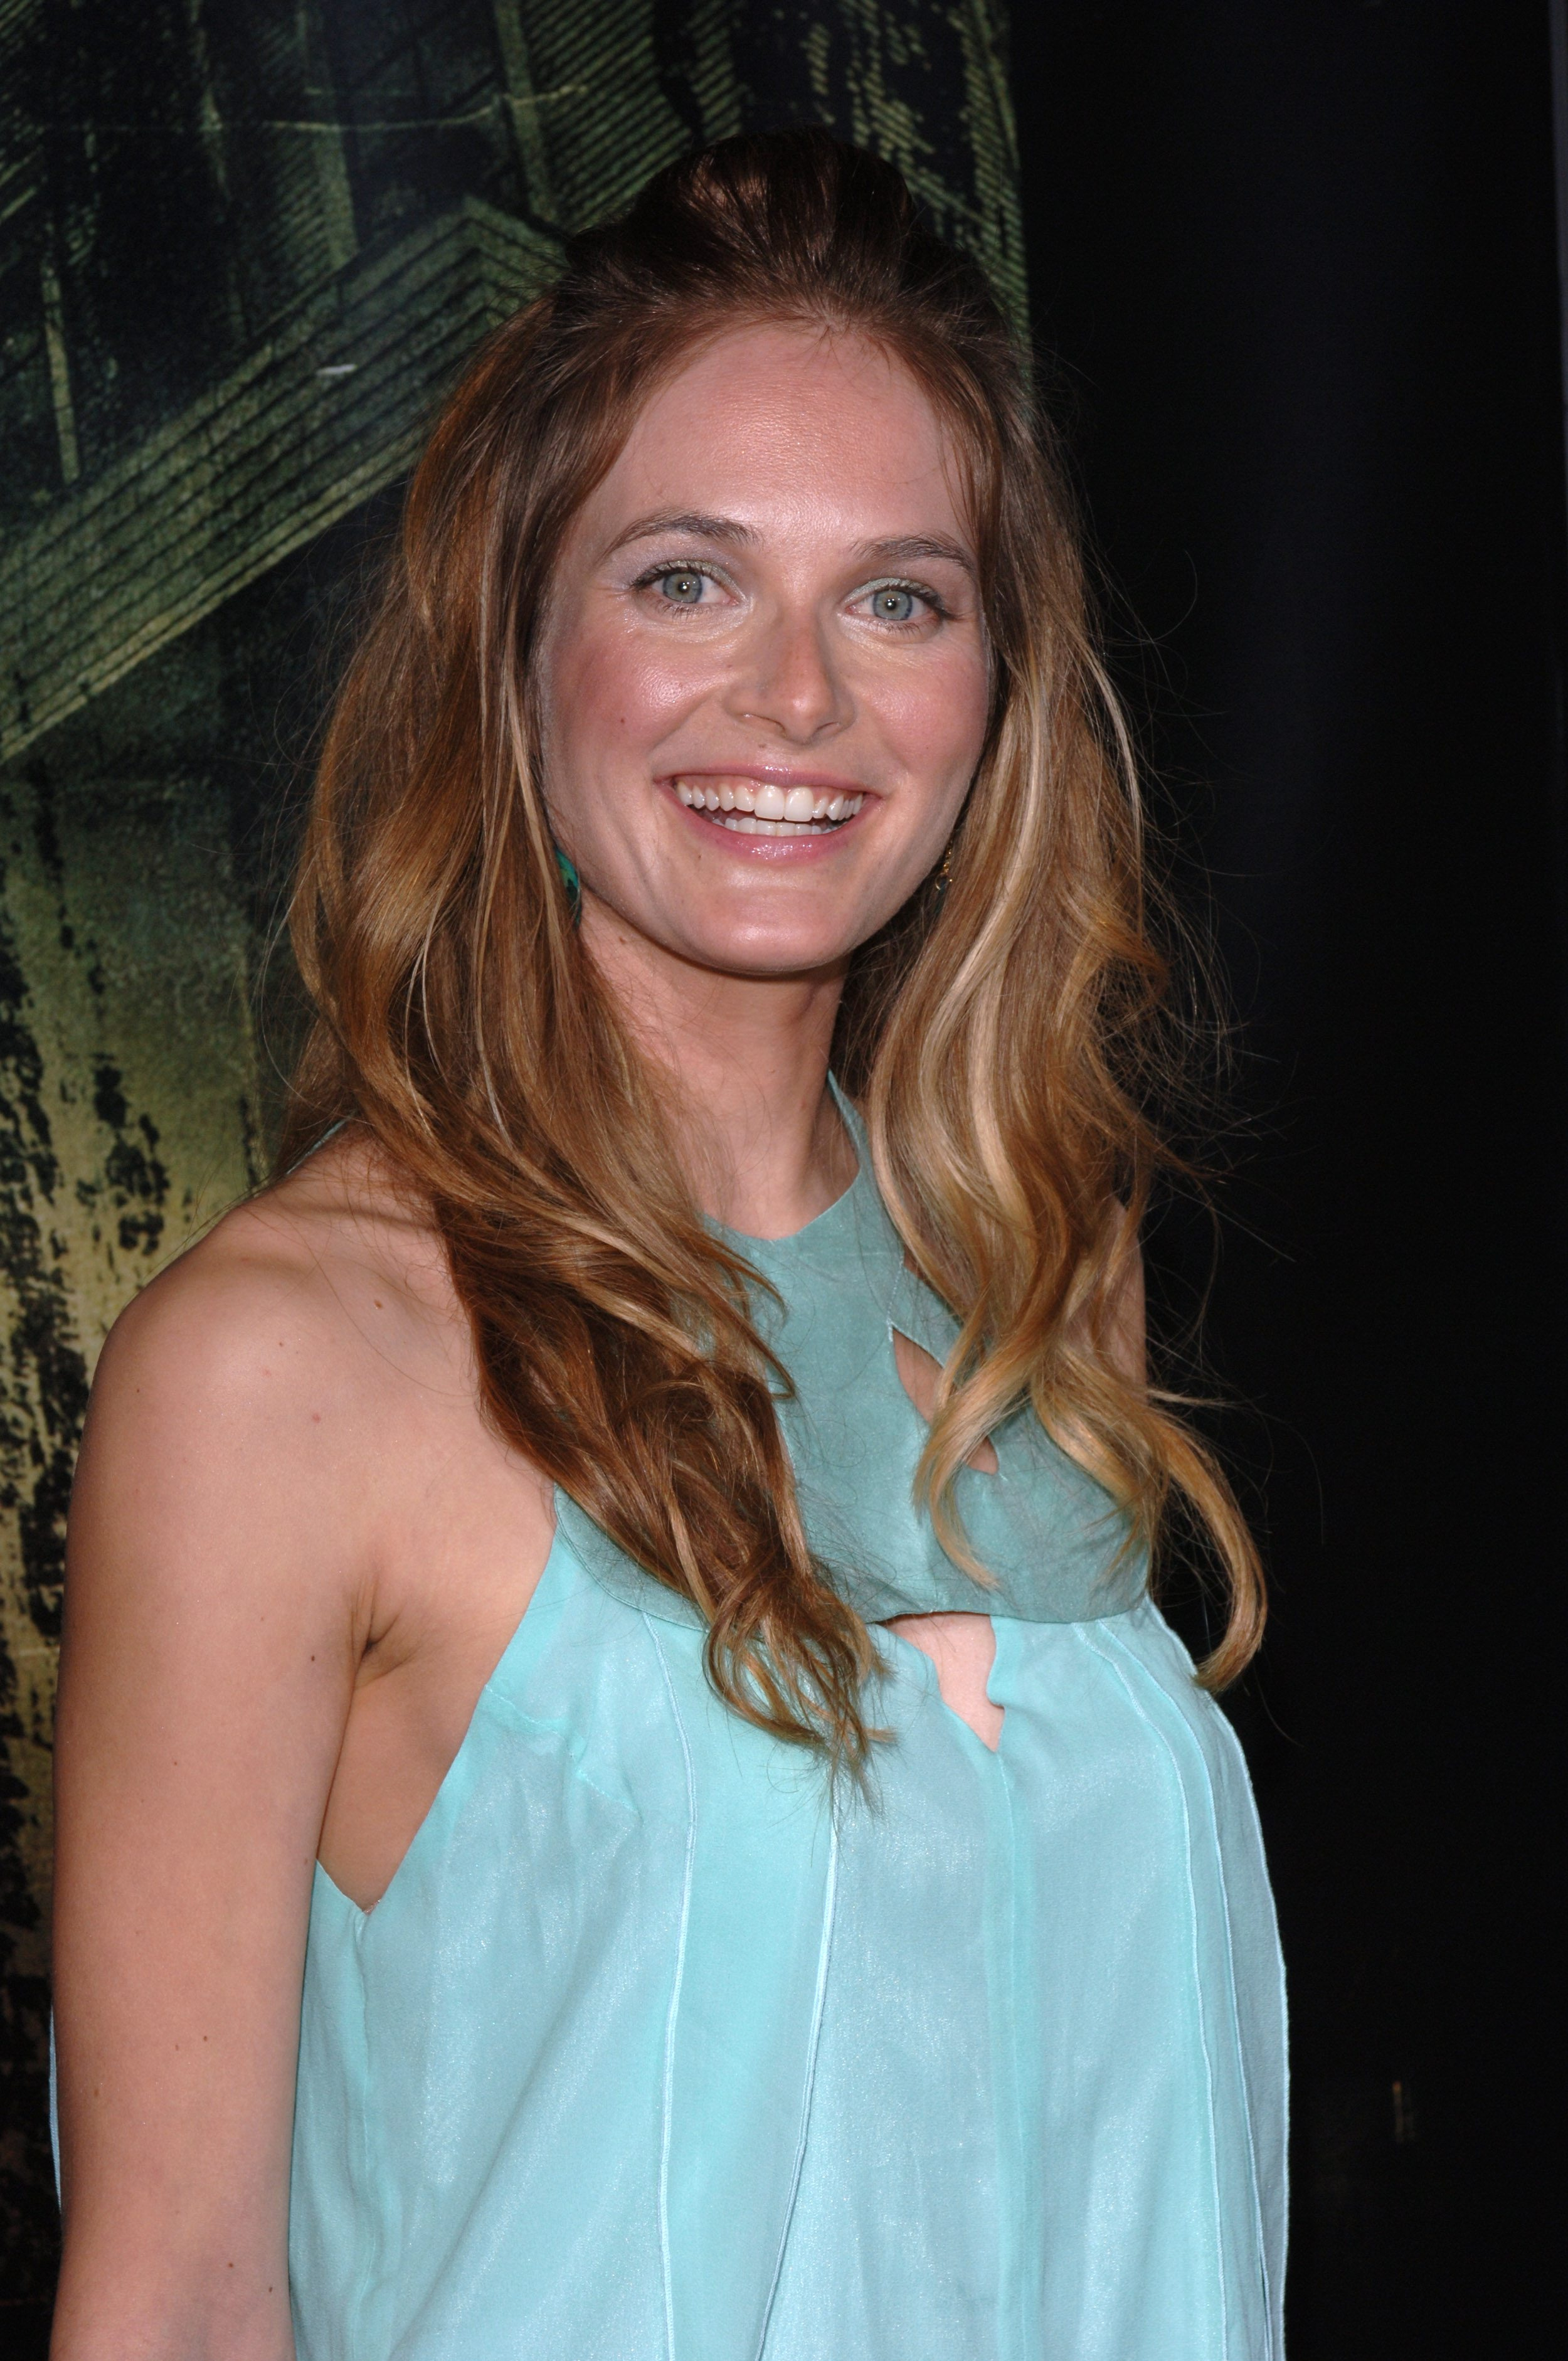 The 41-year old daughter of father (?) and mother(?), 173 cm tall Rachel Blanchard in 2017 photo